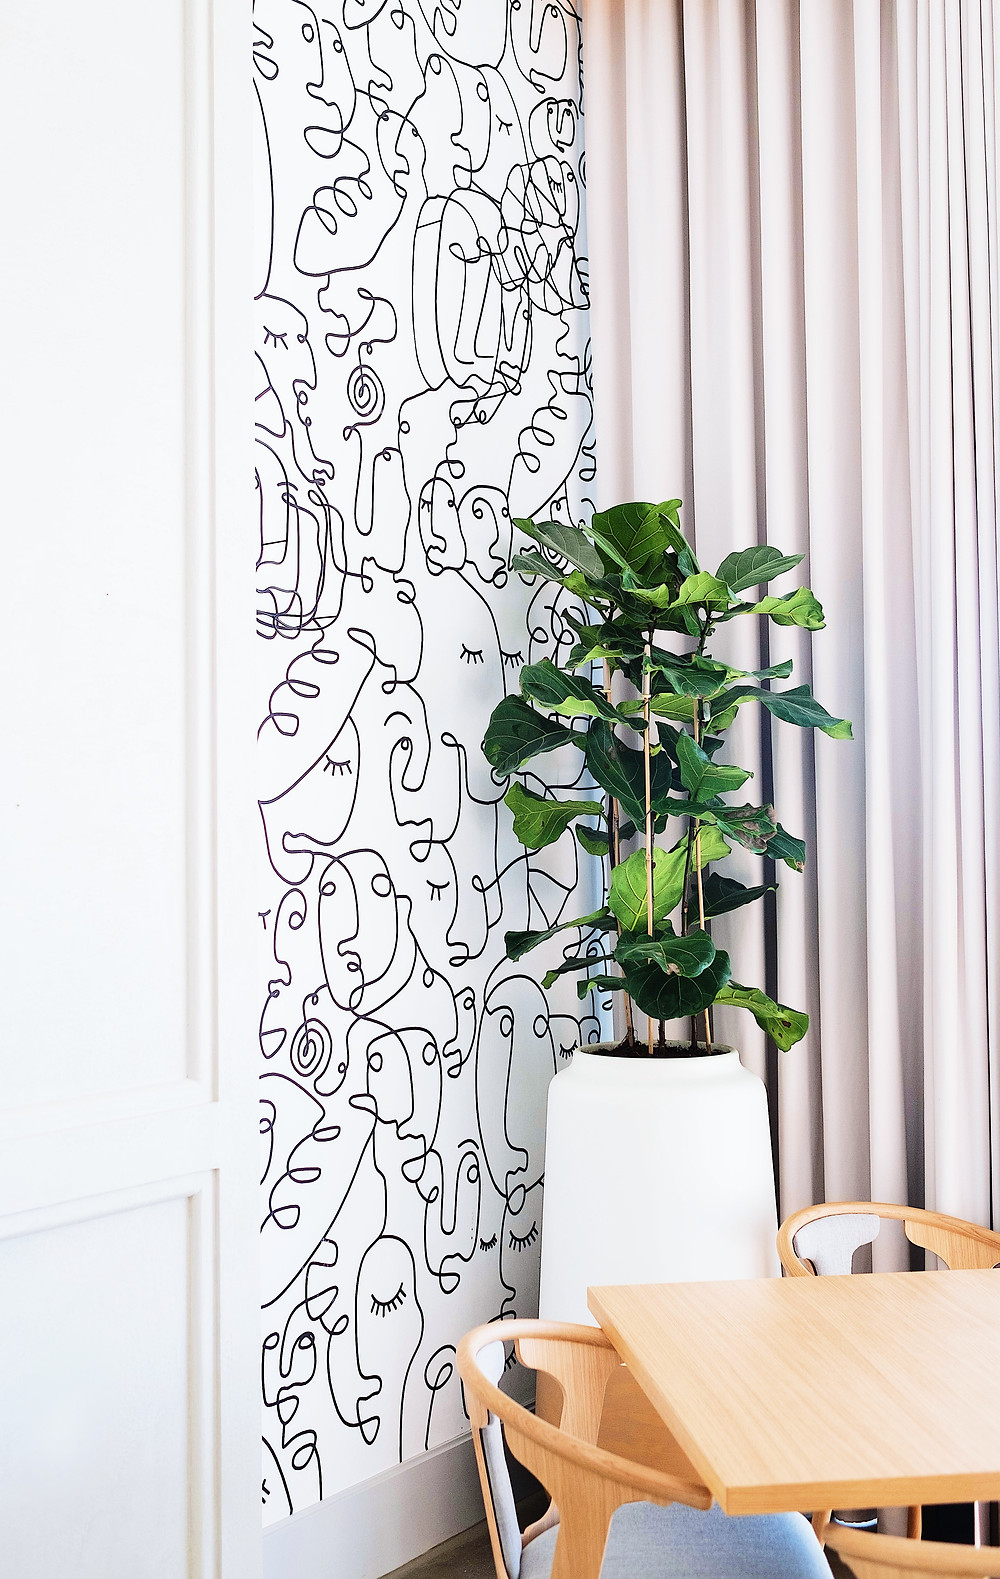 Interior designer Lourdy Ghorayeb's stylized artwork on a house wall